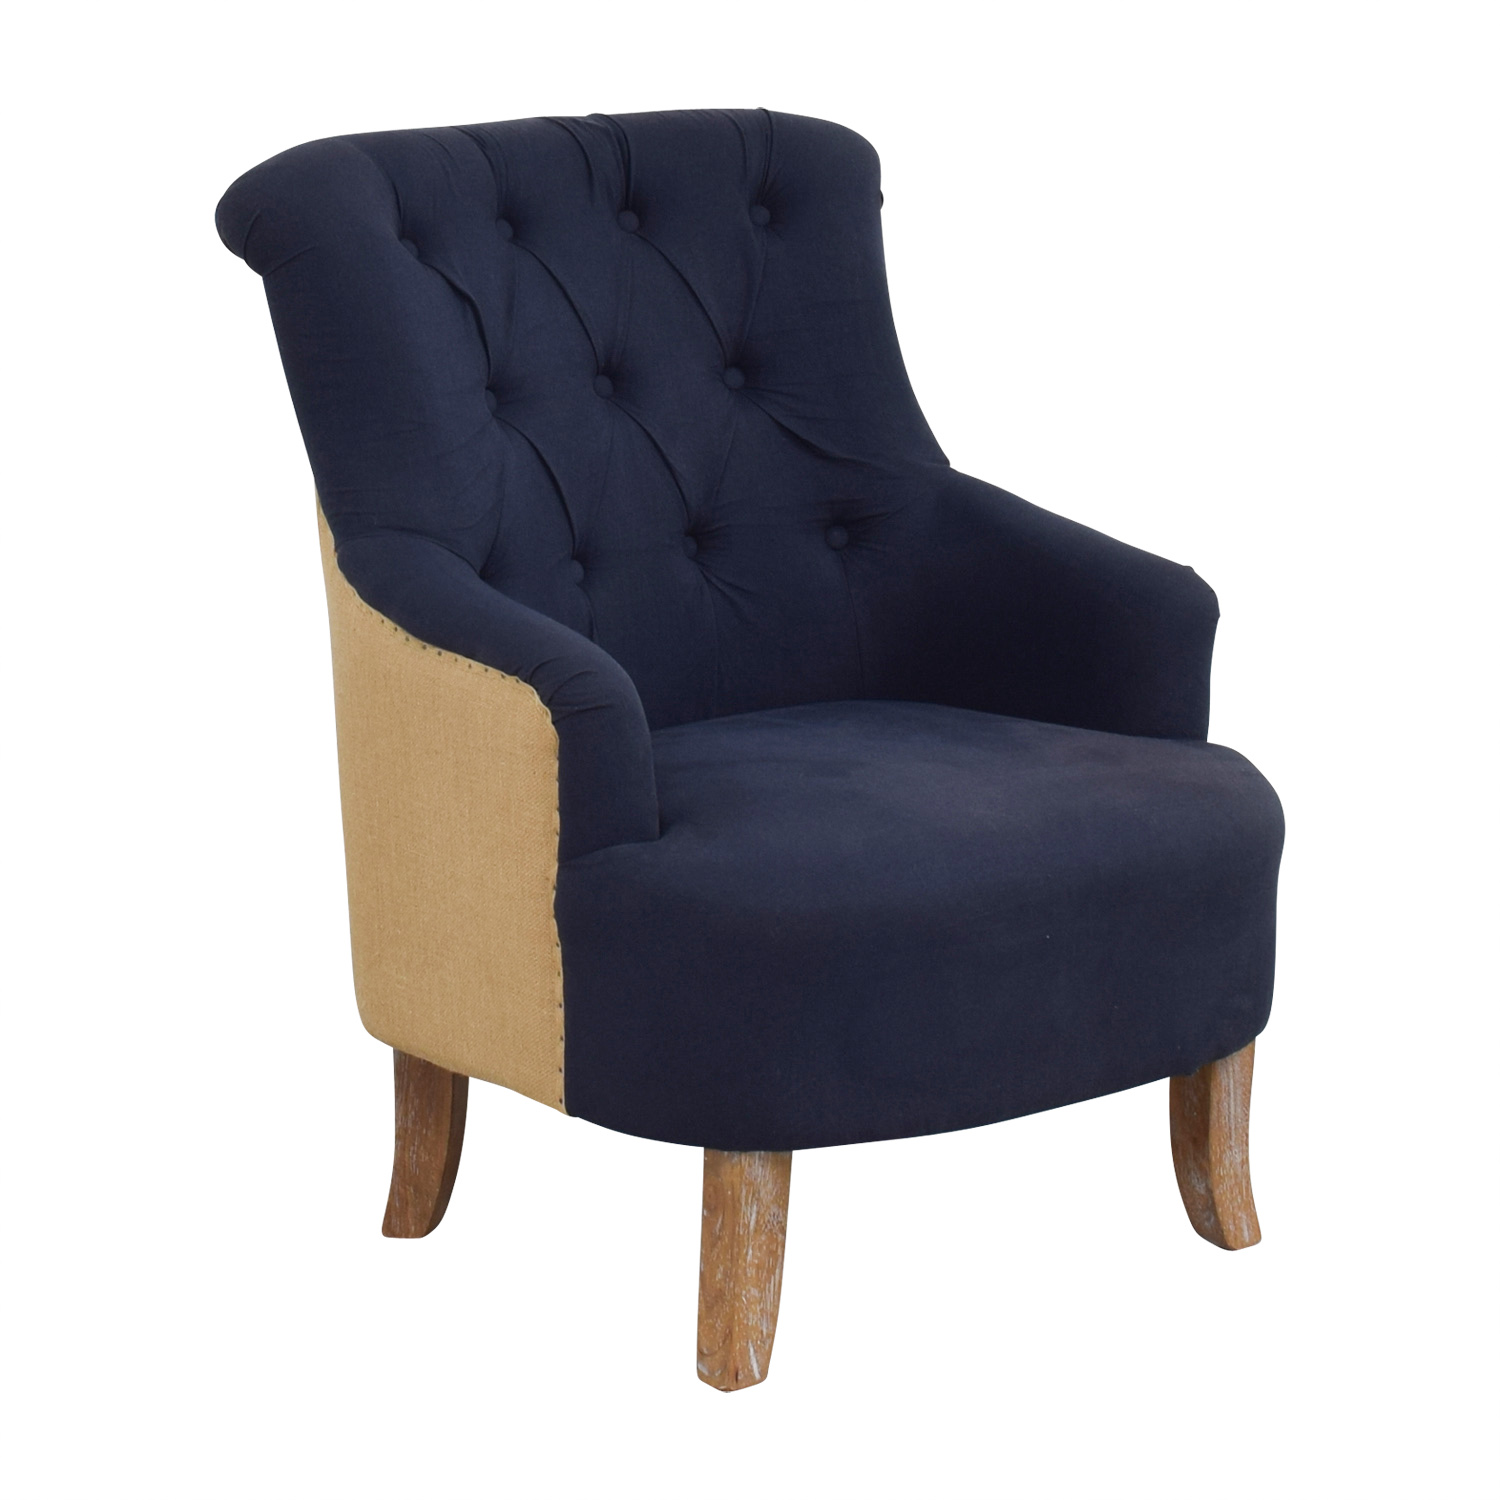 Pier 1 Imports Pier 1 Imports Blue and Tan Tufted Armchair coupon